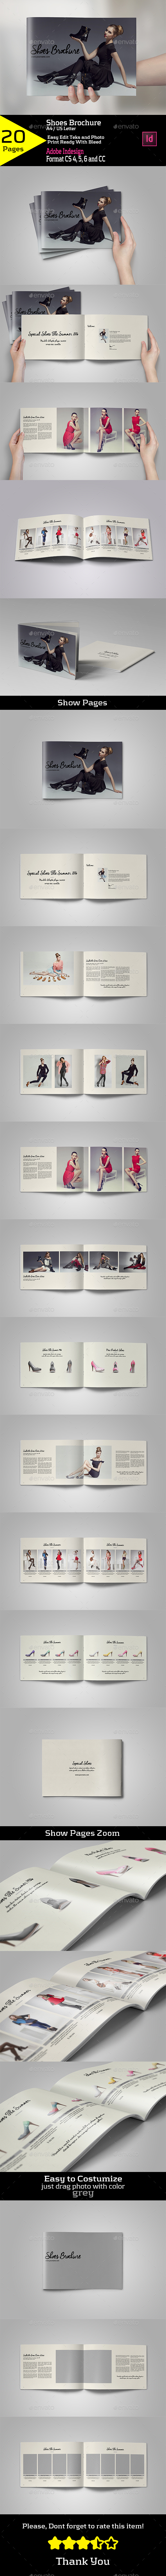 Shoes Brochure A4/US Letter - Brochures Print Templates